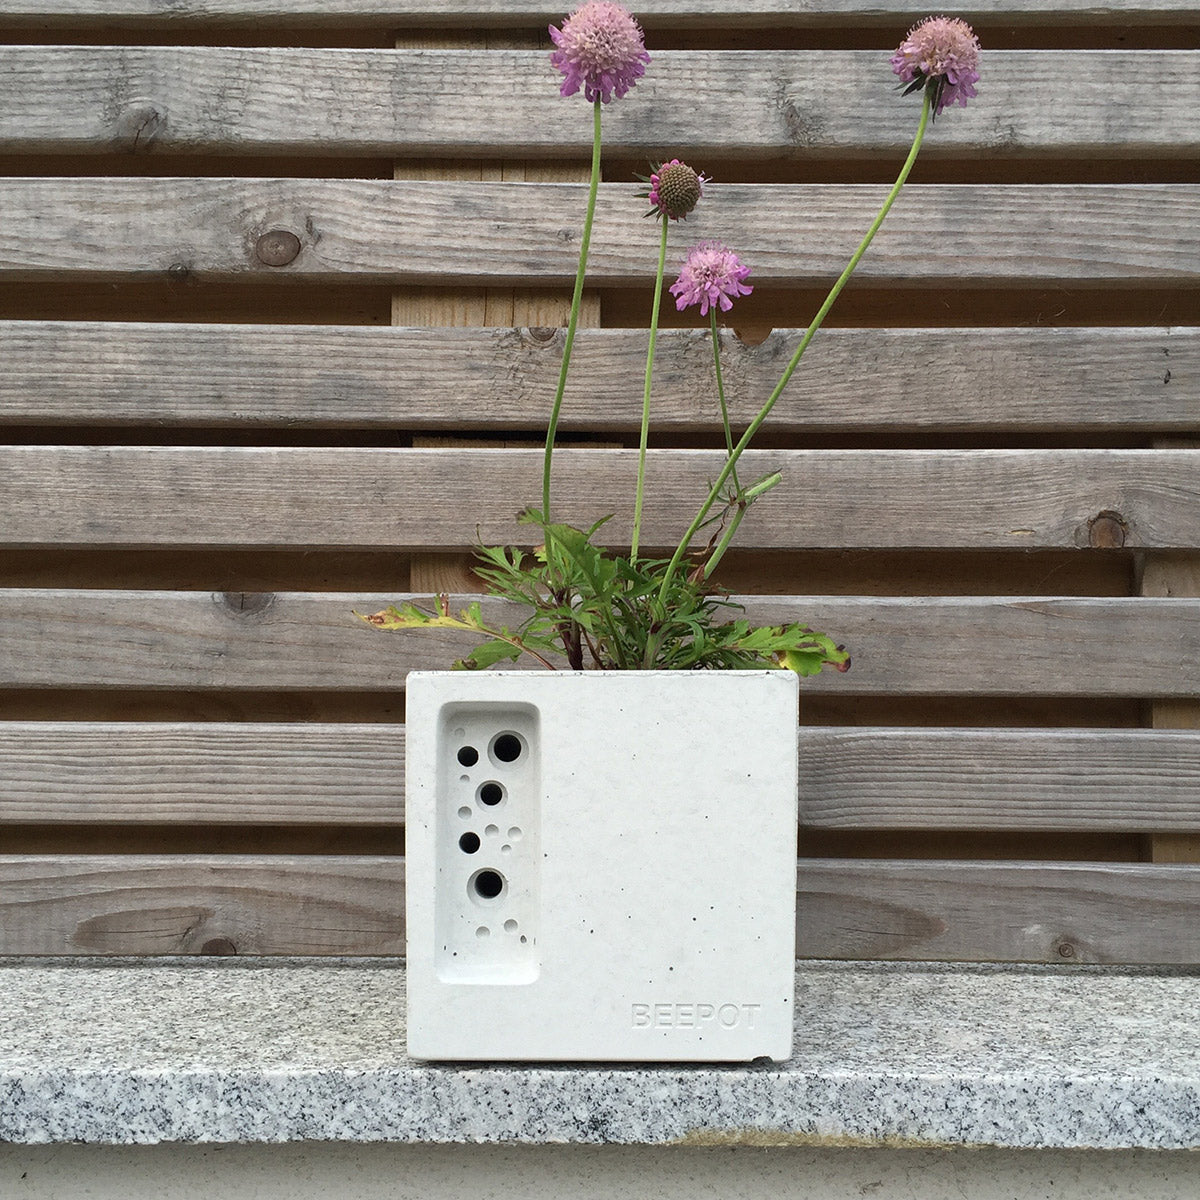 Concrete Bee Pot planted with pink flowers